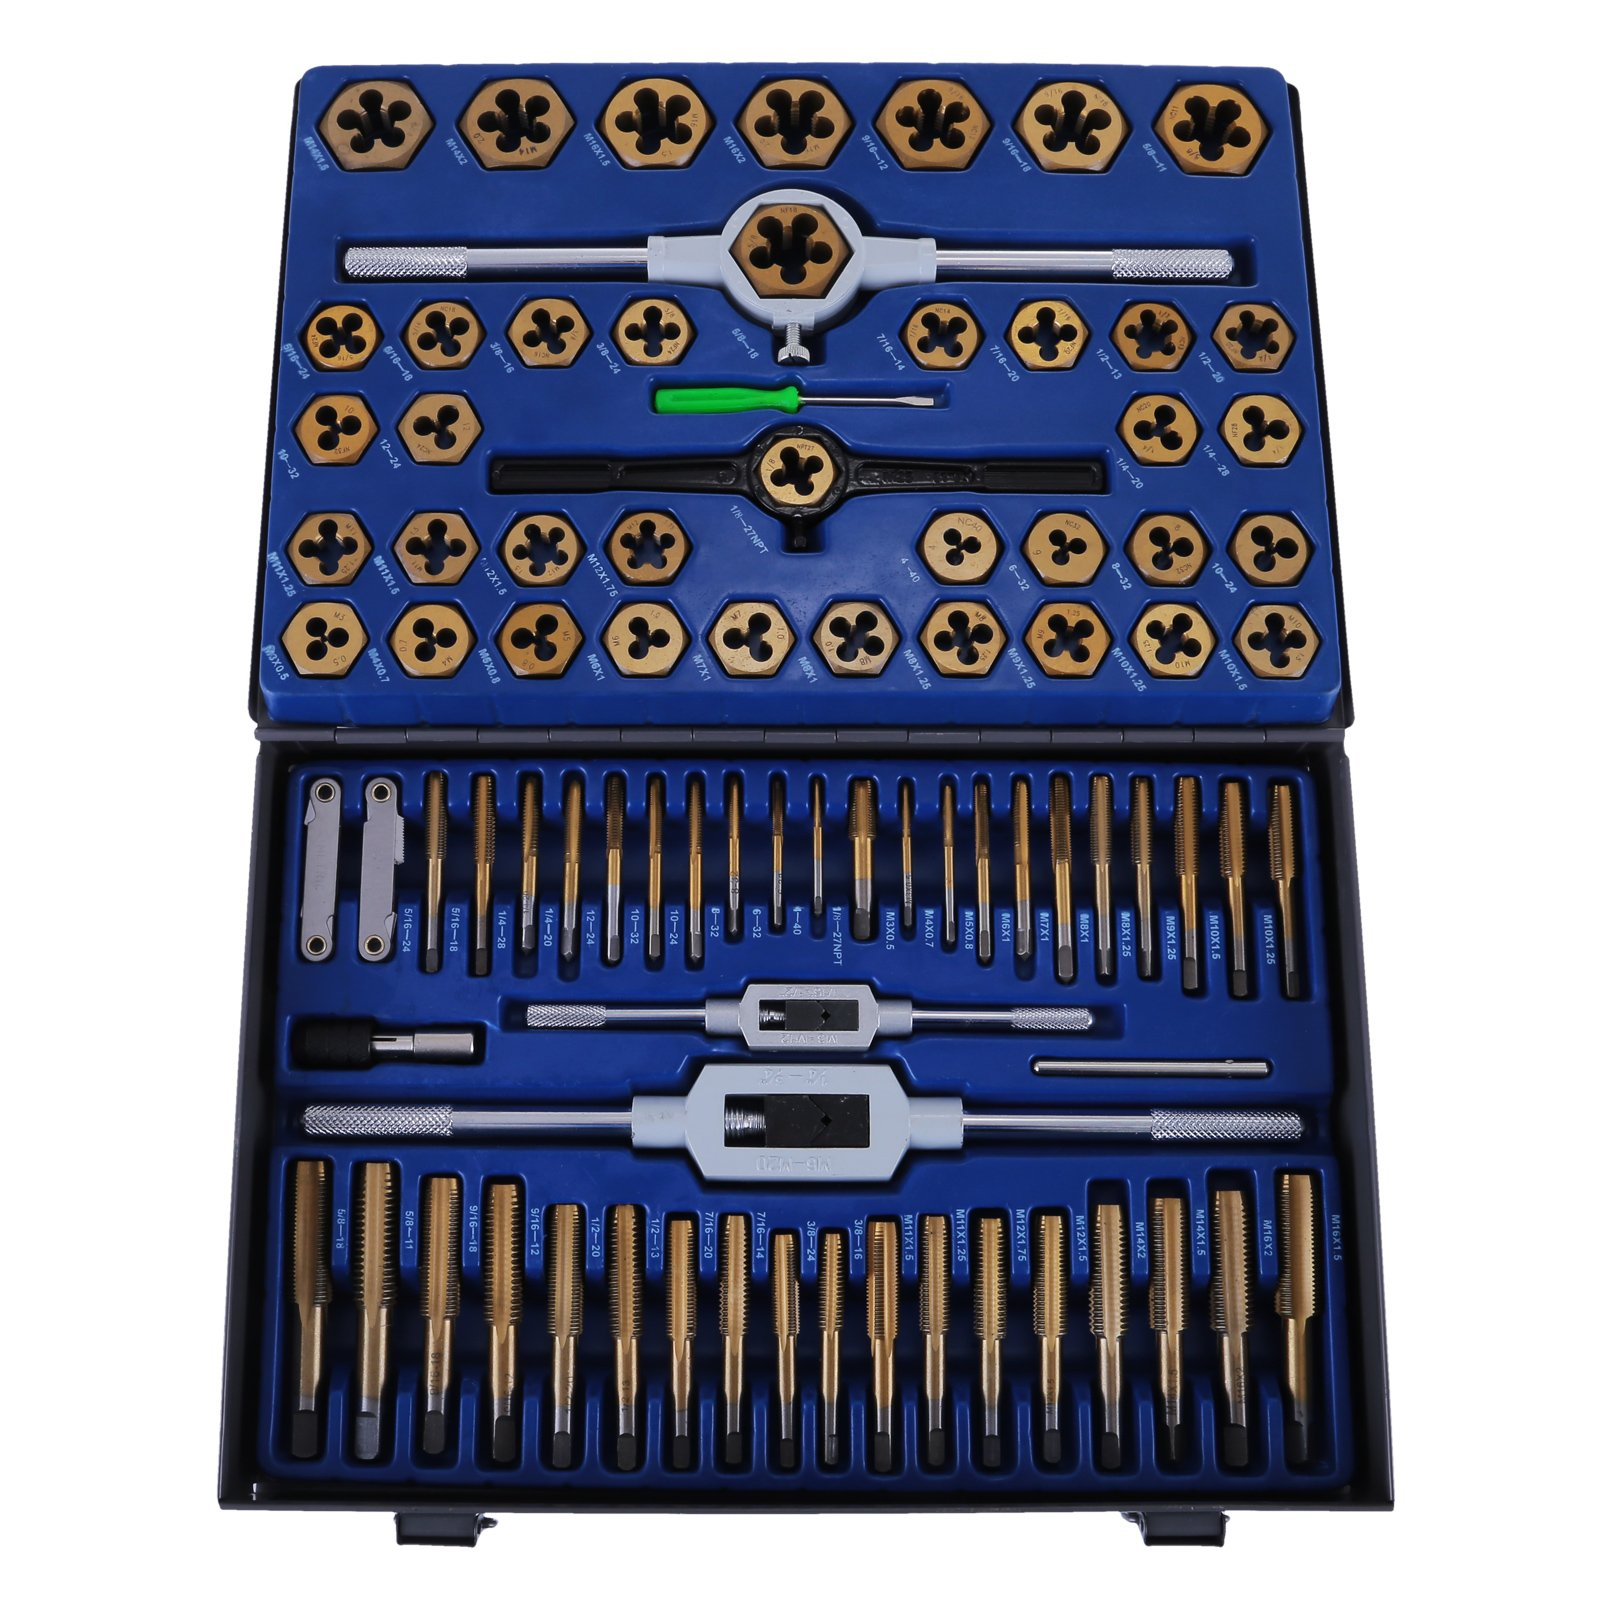 Happybuy Tap and Die Set 86PCS Combination SAE / Metric Tap and Die Kit for Cutting External and Internal Threads with Storage Case